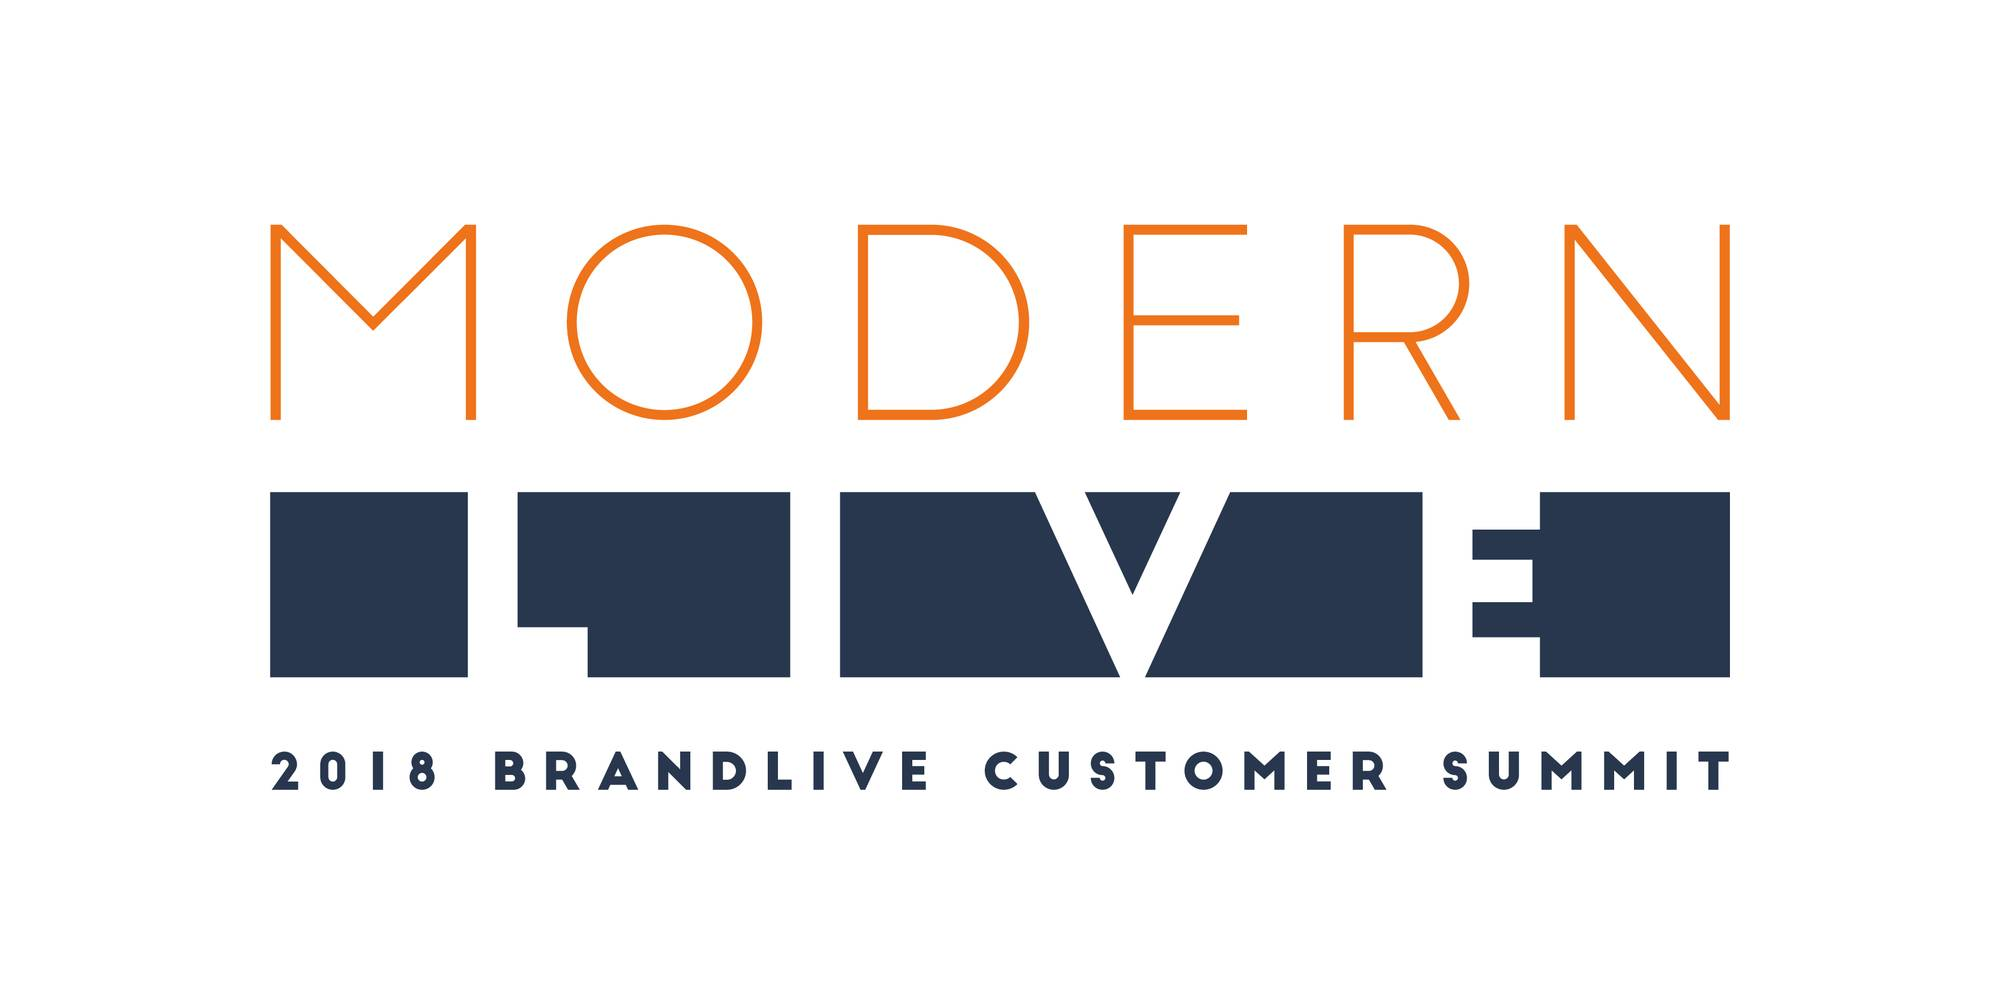 Watch Each Session From the Brandlive Customer Summit